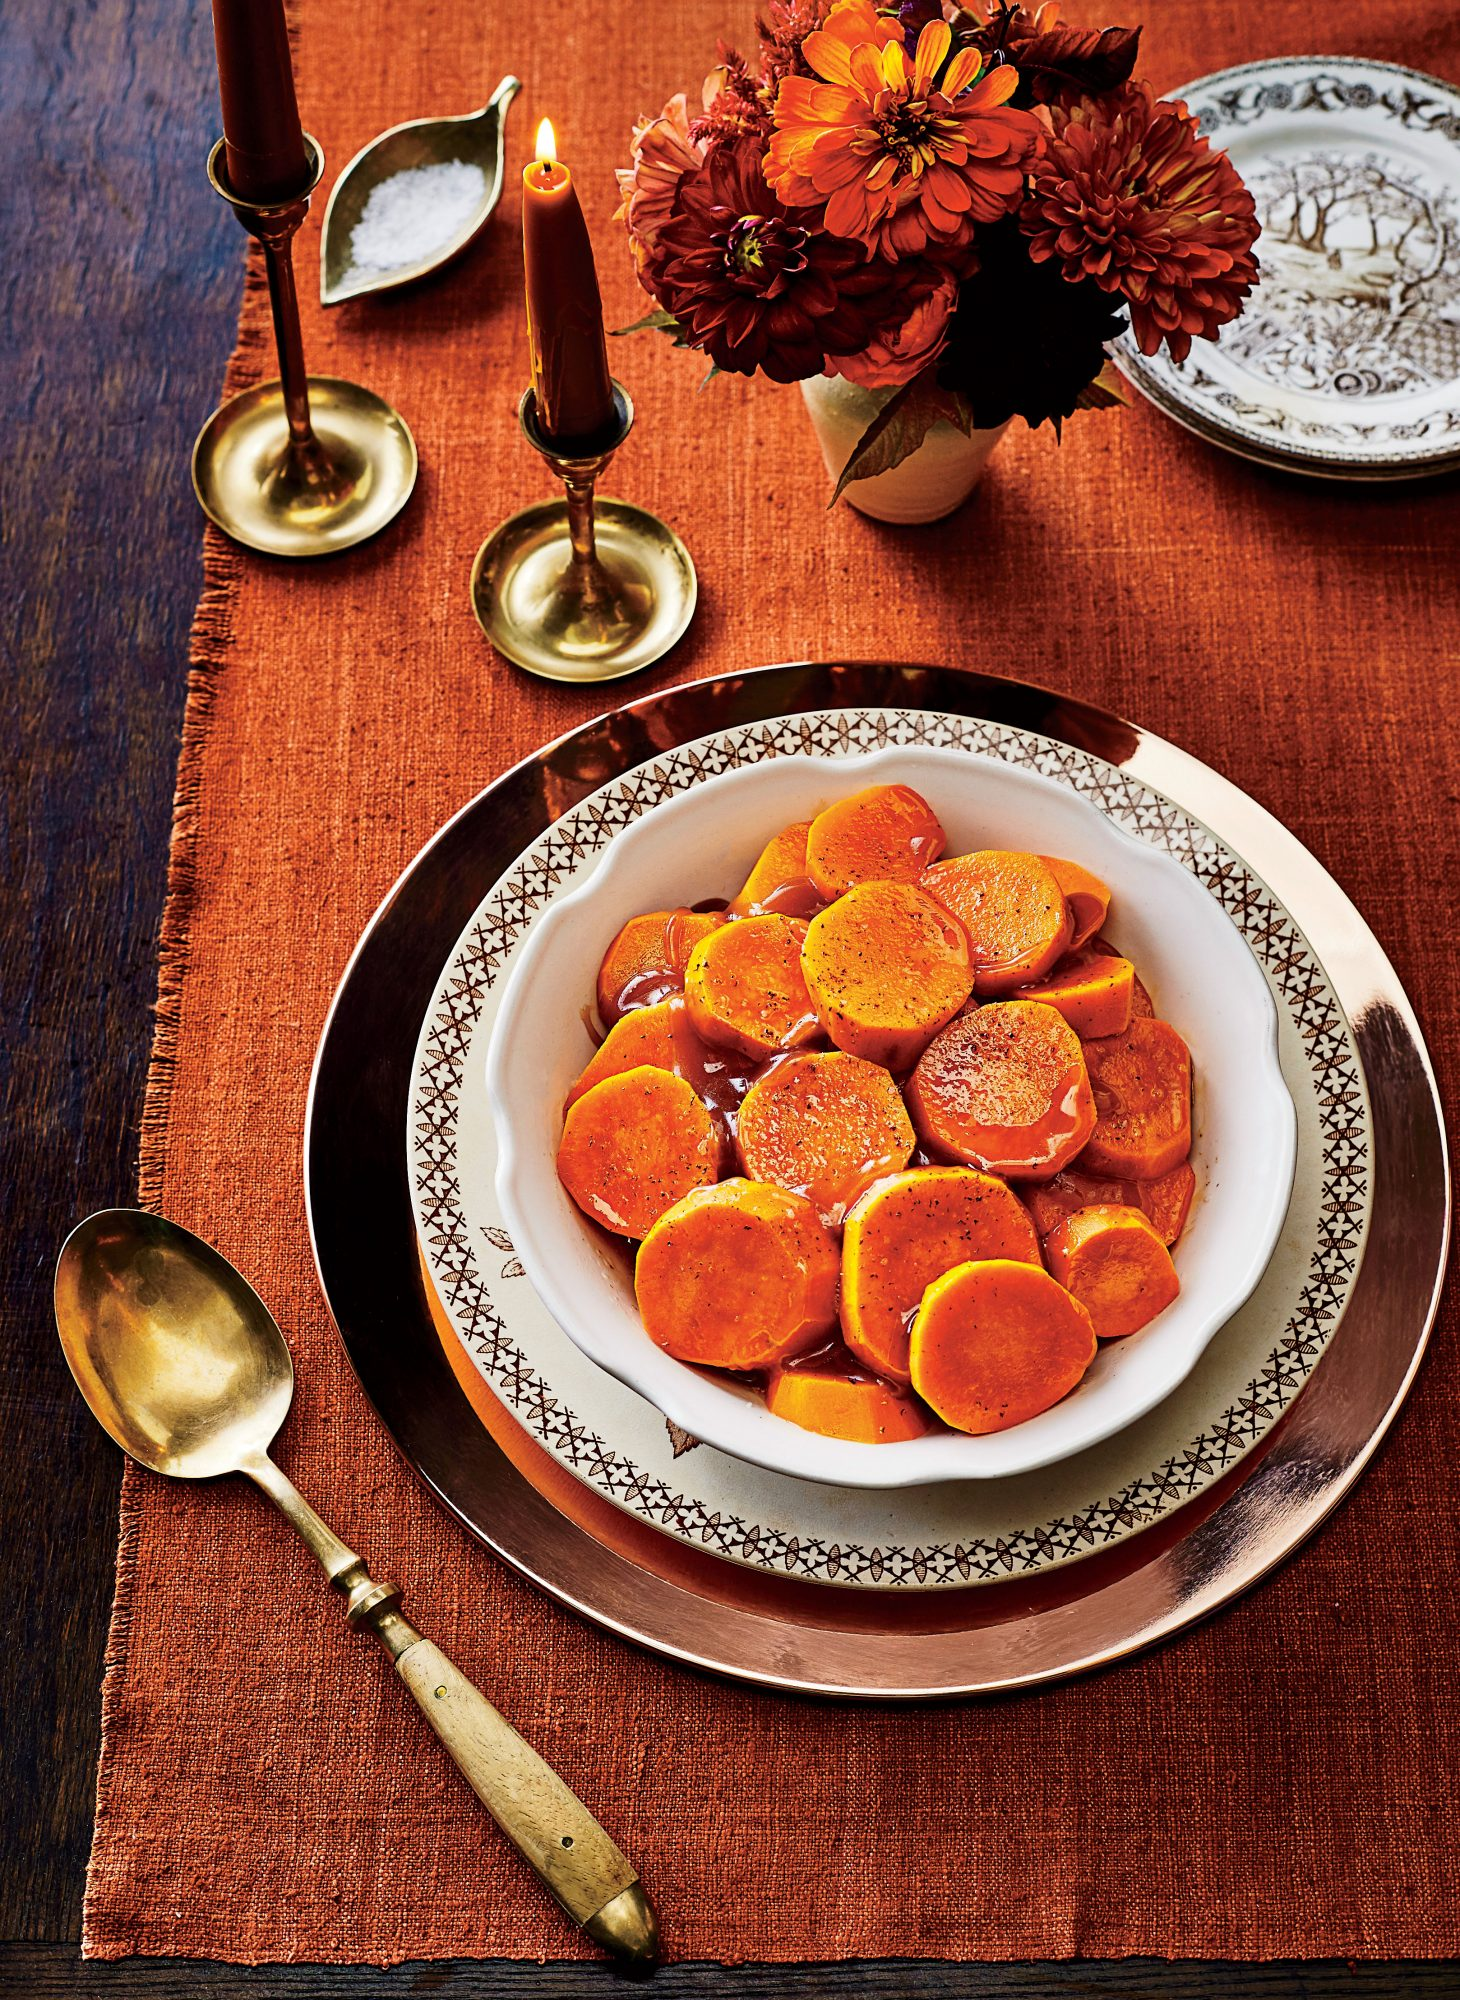 Classic Candied Yams